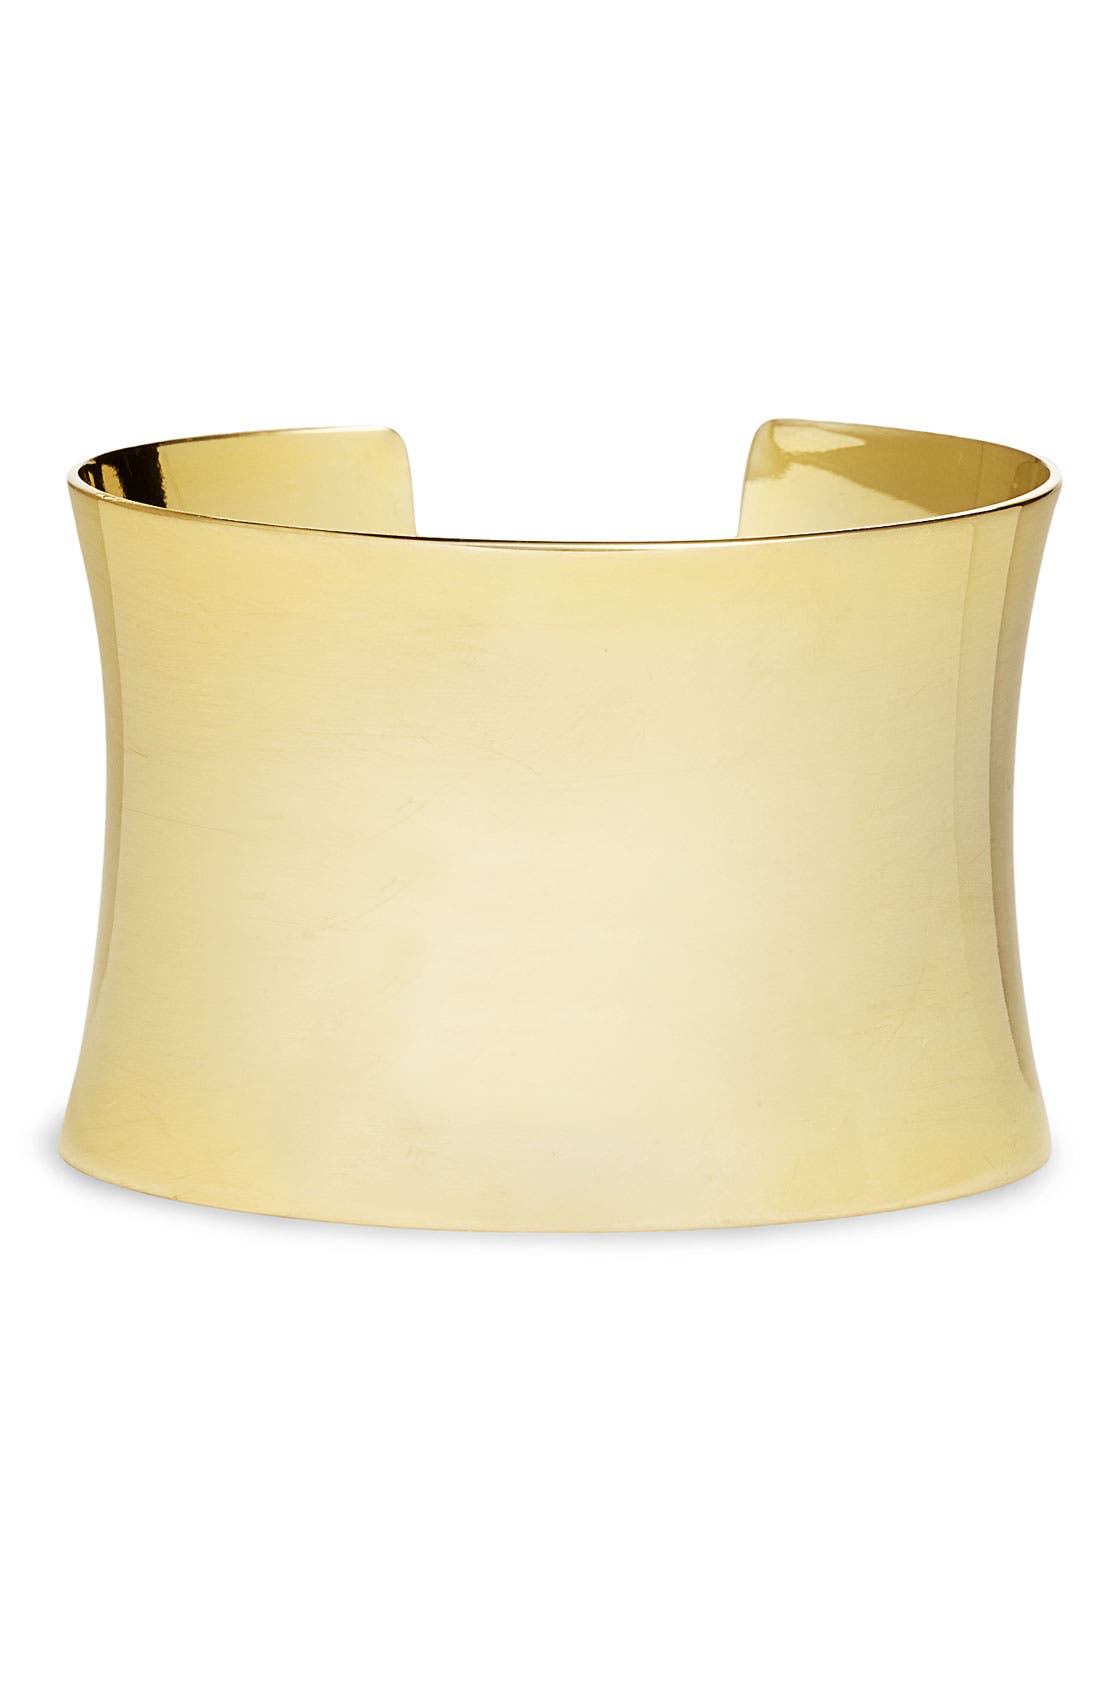 Alternate Image 1 Selected - Nordstrom 'Super Shiny' Curved Cuff